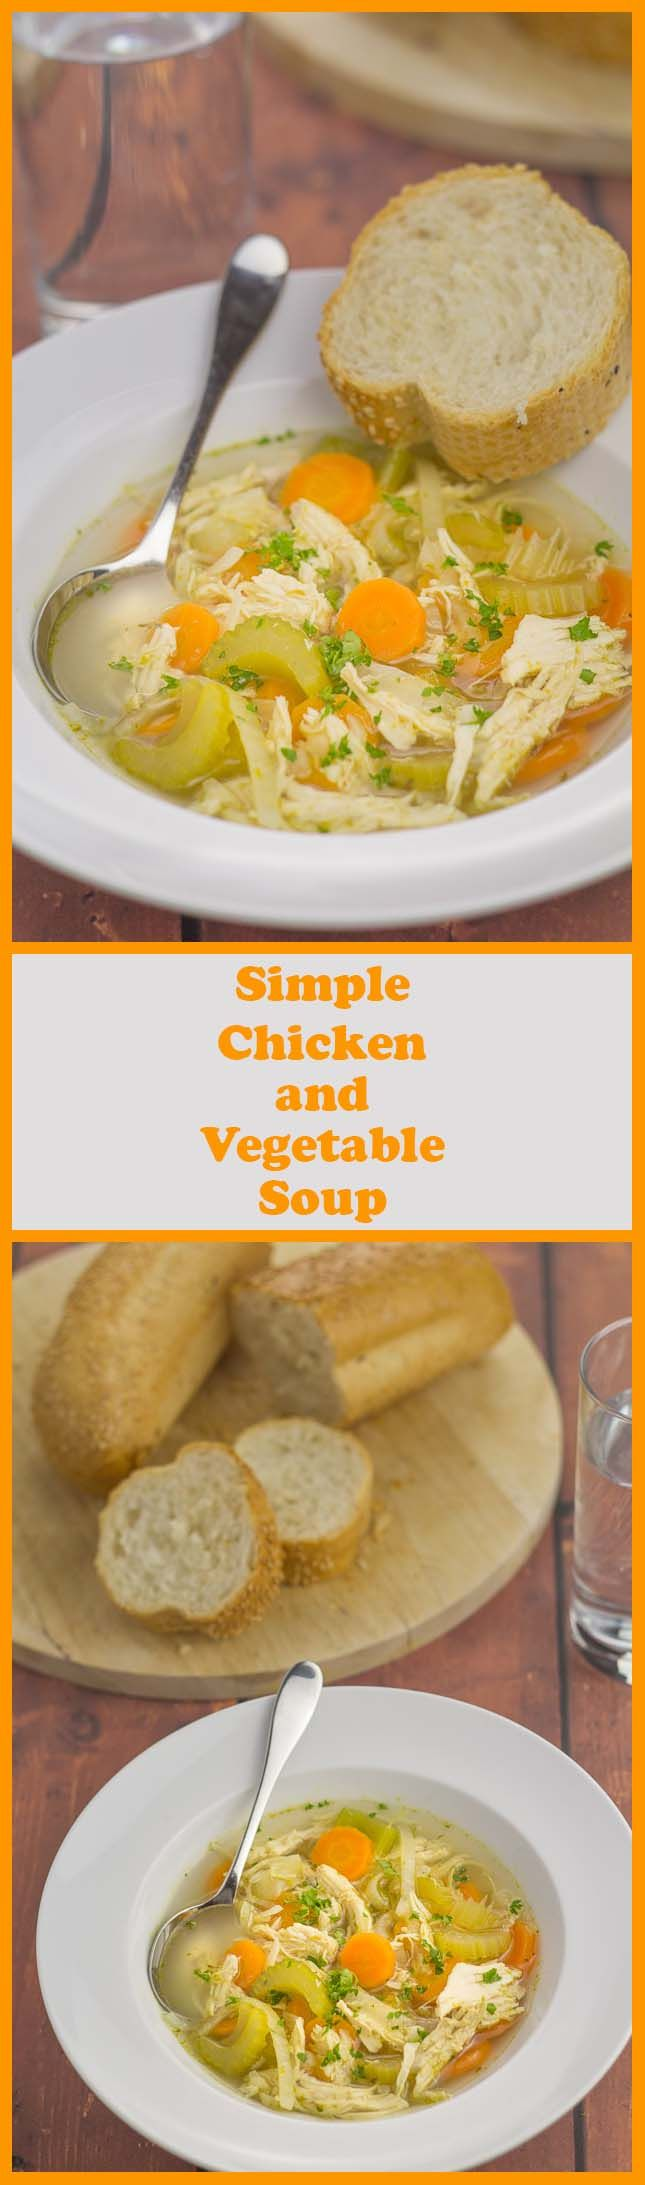 Simple chicken and vegetable soup. Simple because it's made with basic vegetables, a chicken breast and stock cubes. You can easily add your own selection of seasonal vegetables or vegetables to use up too. All in all, this is a really tasty, versatile and satisfying simple soup recipe. via @neilhealthymeal